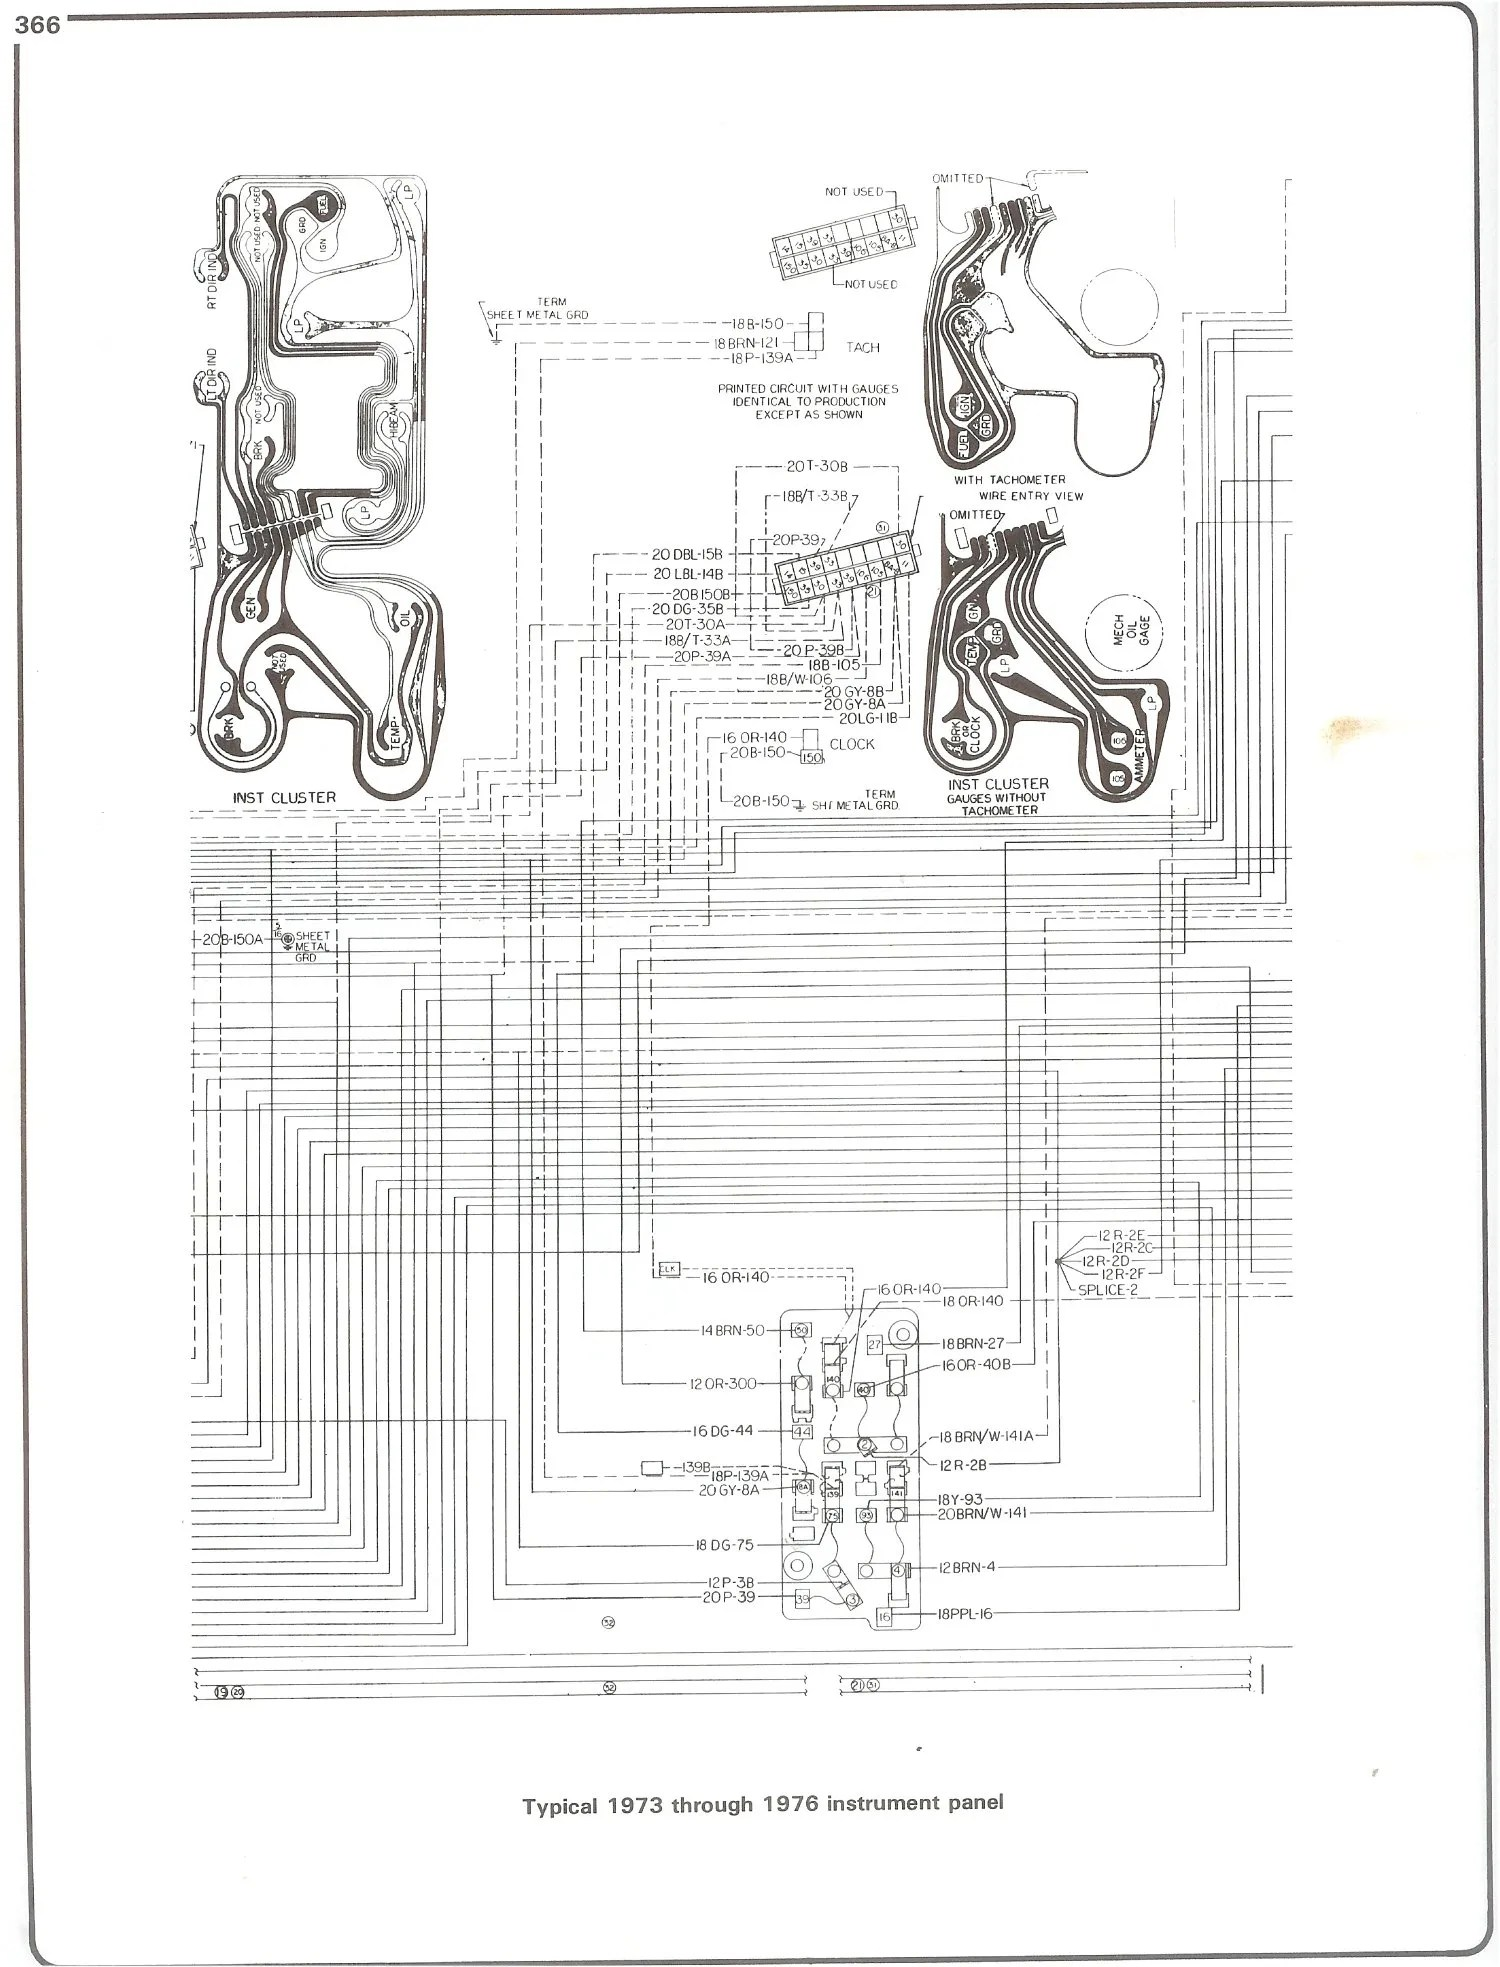 hight resolution of plete 73 87 wiring diagrams 1989 chevy cavalier wiring diagram 20 chevy cavalier wiring harnes diagram